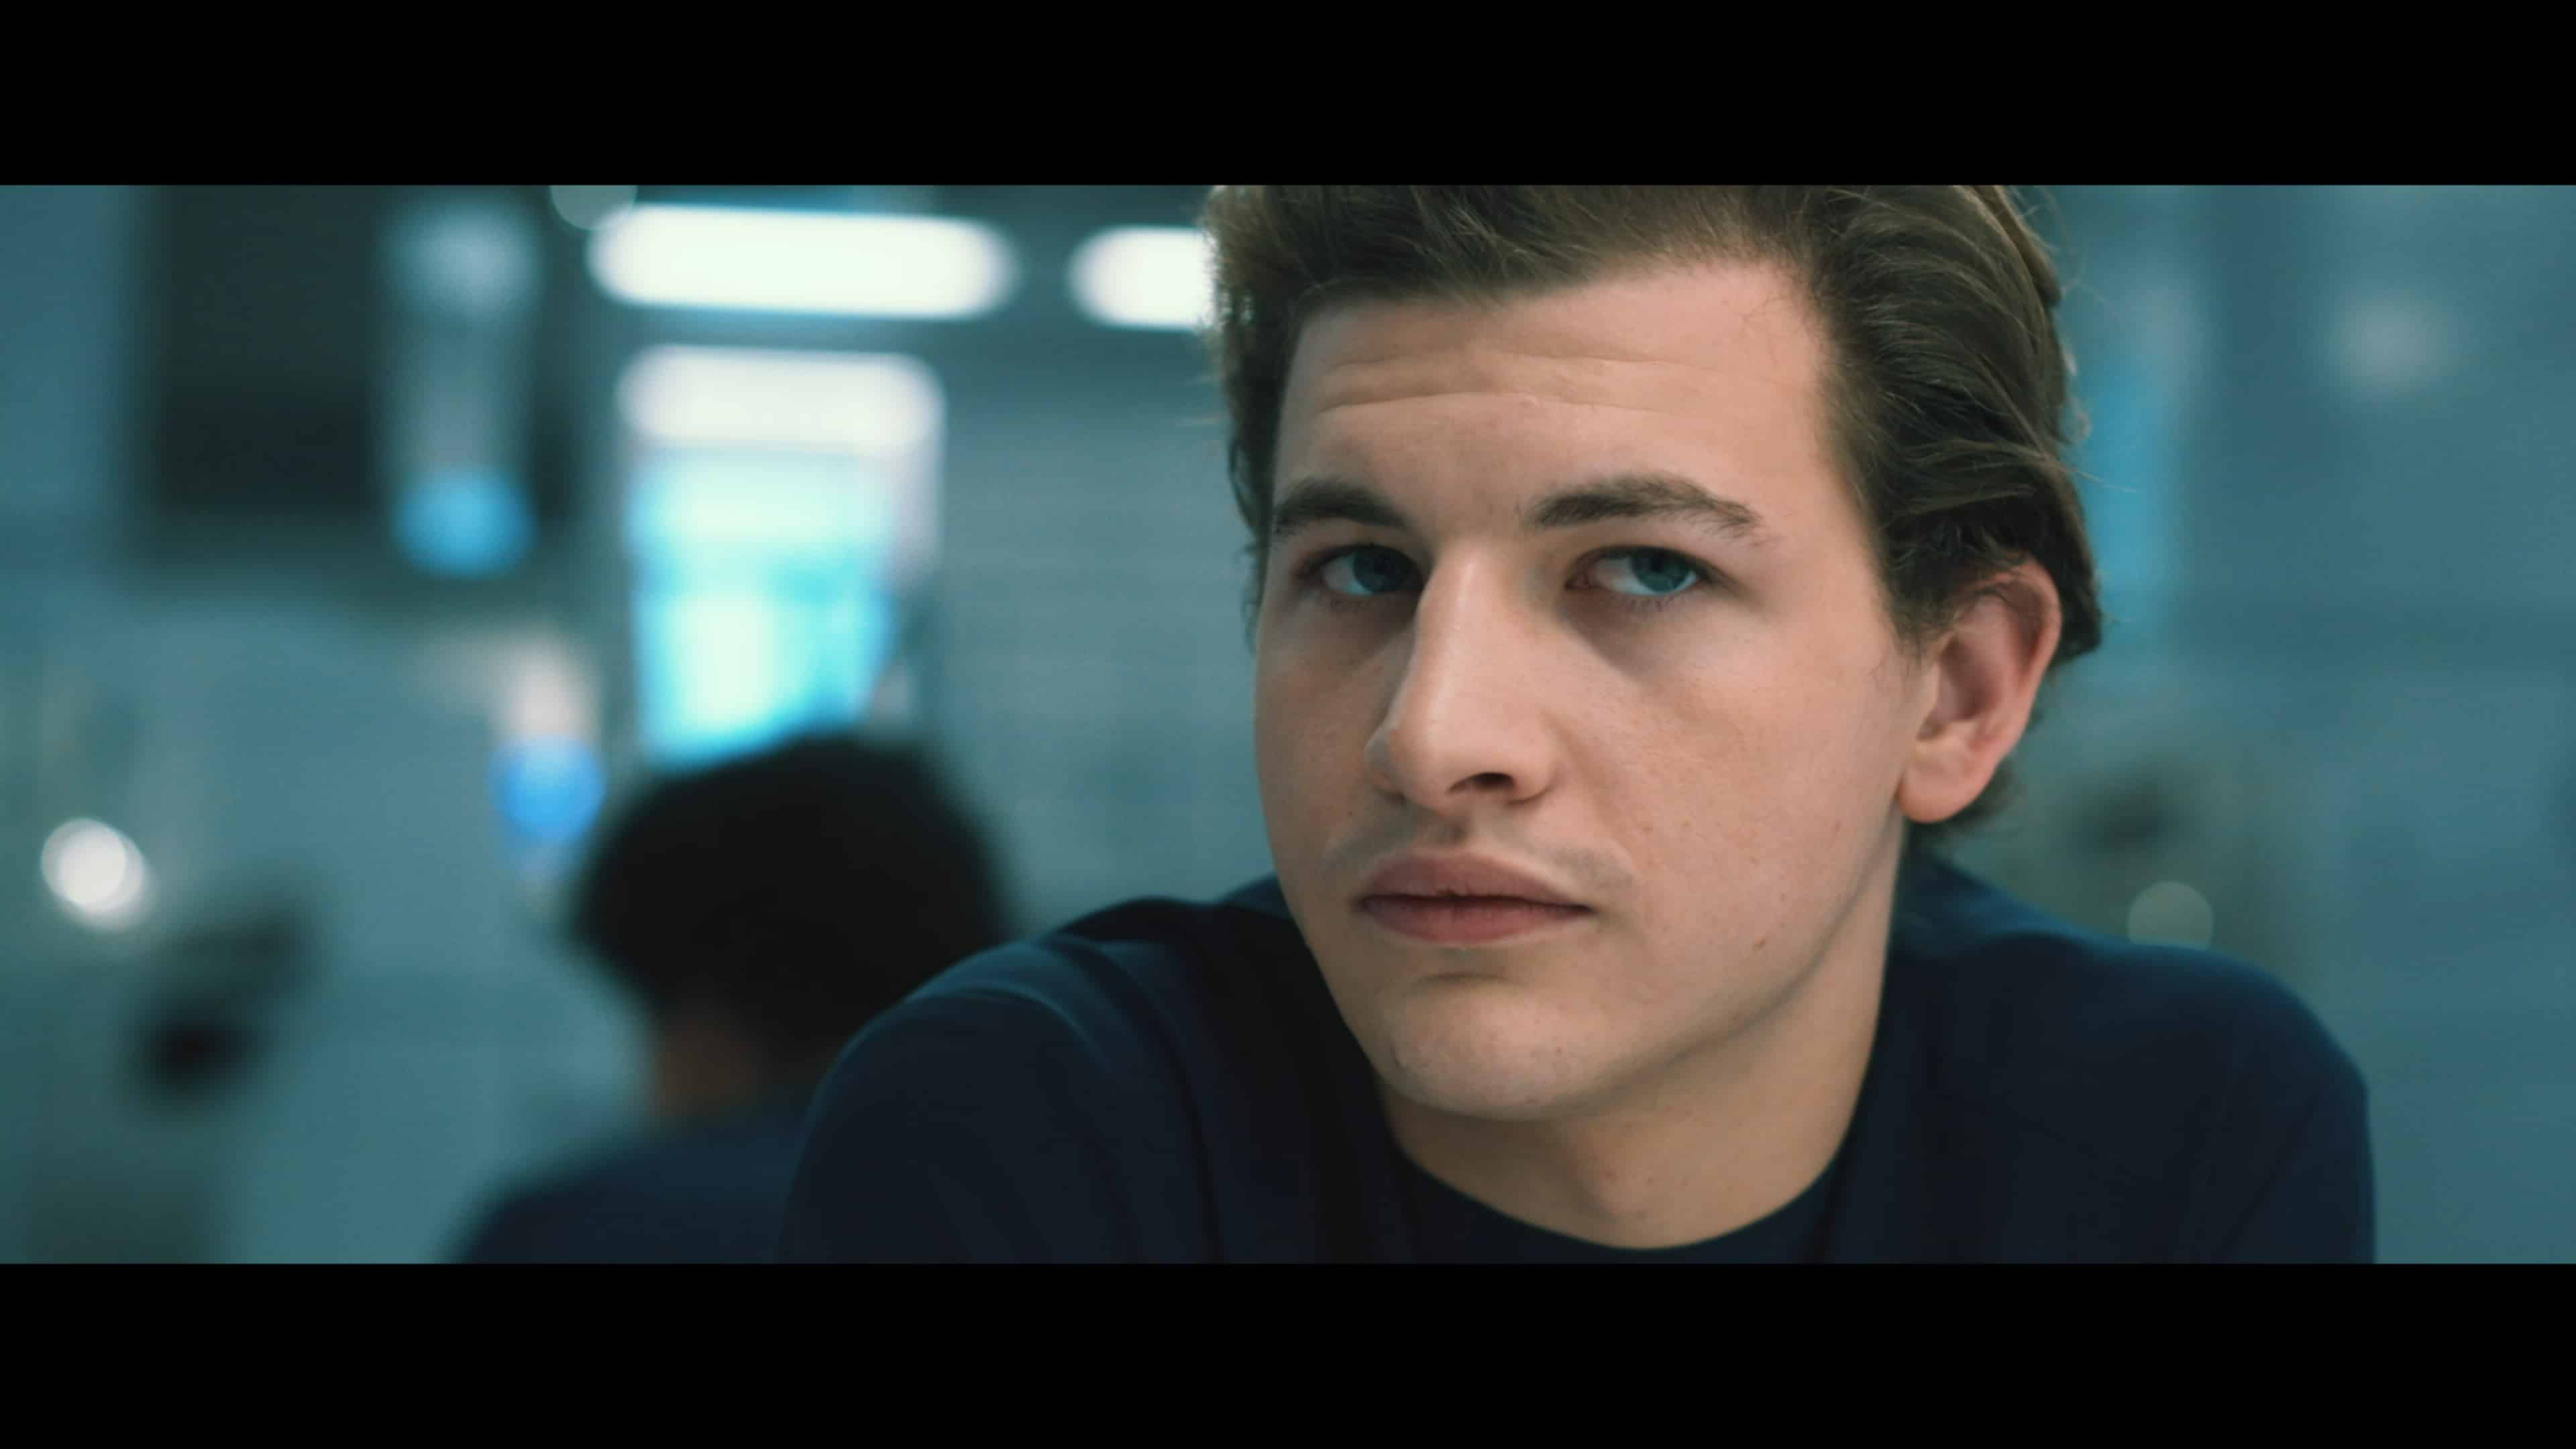 Christopher (Tye Sheridan) in the movie Voyager